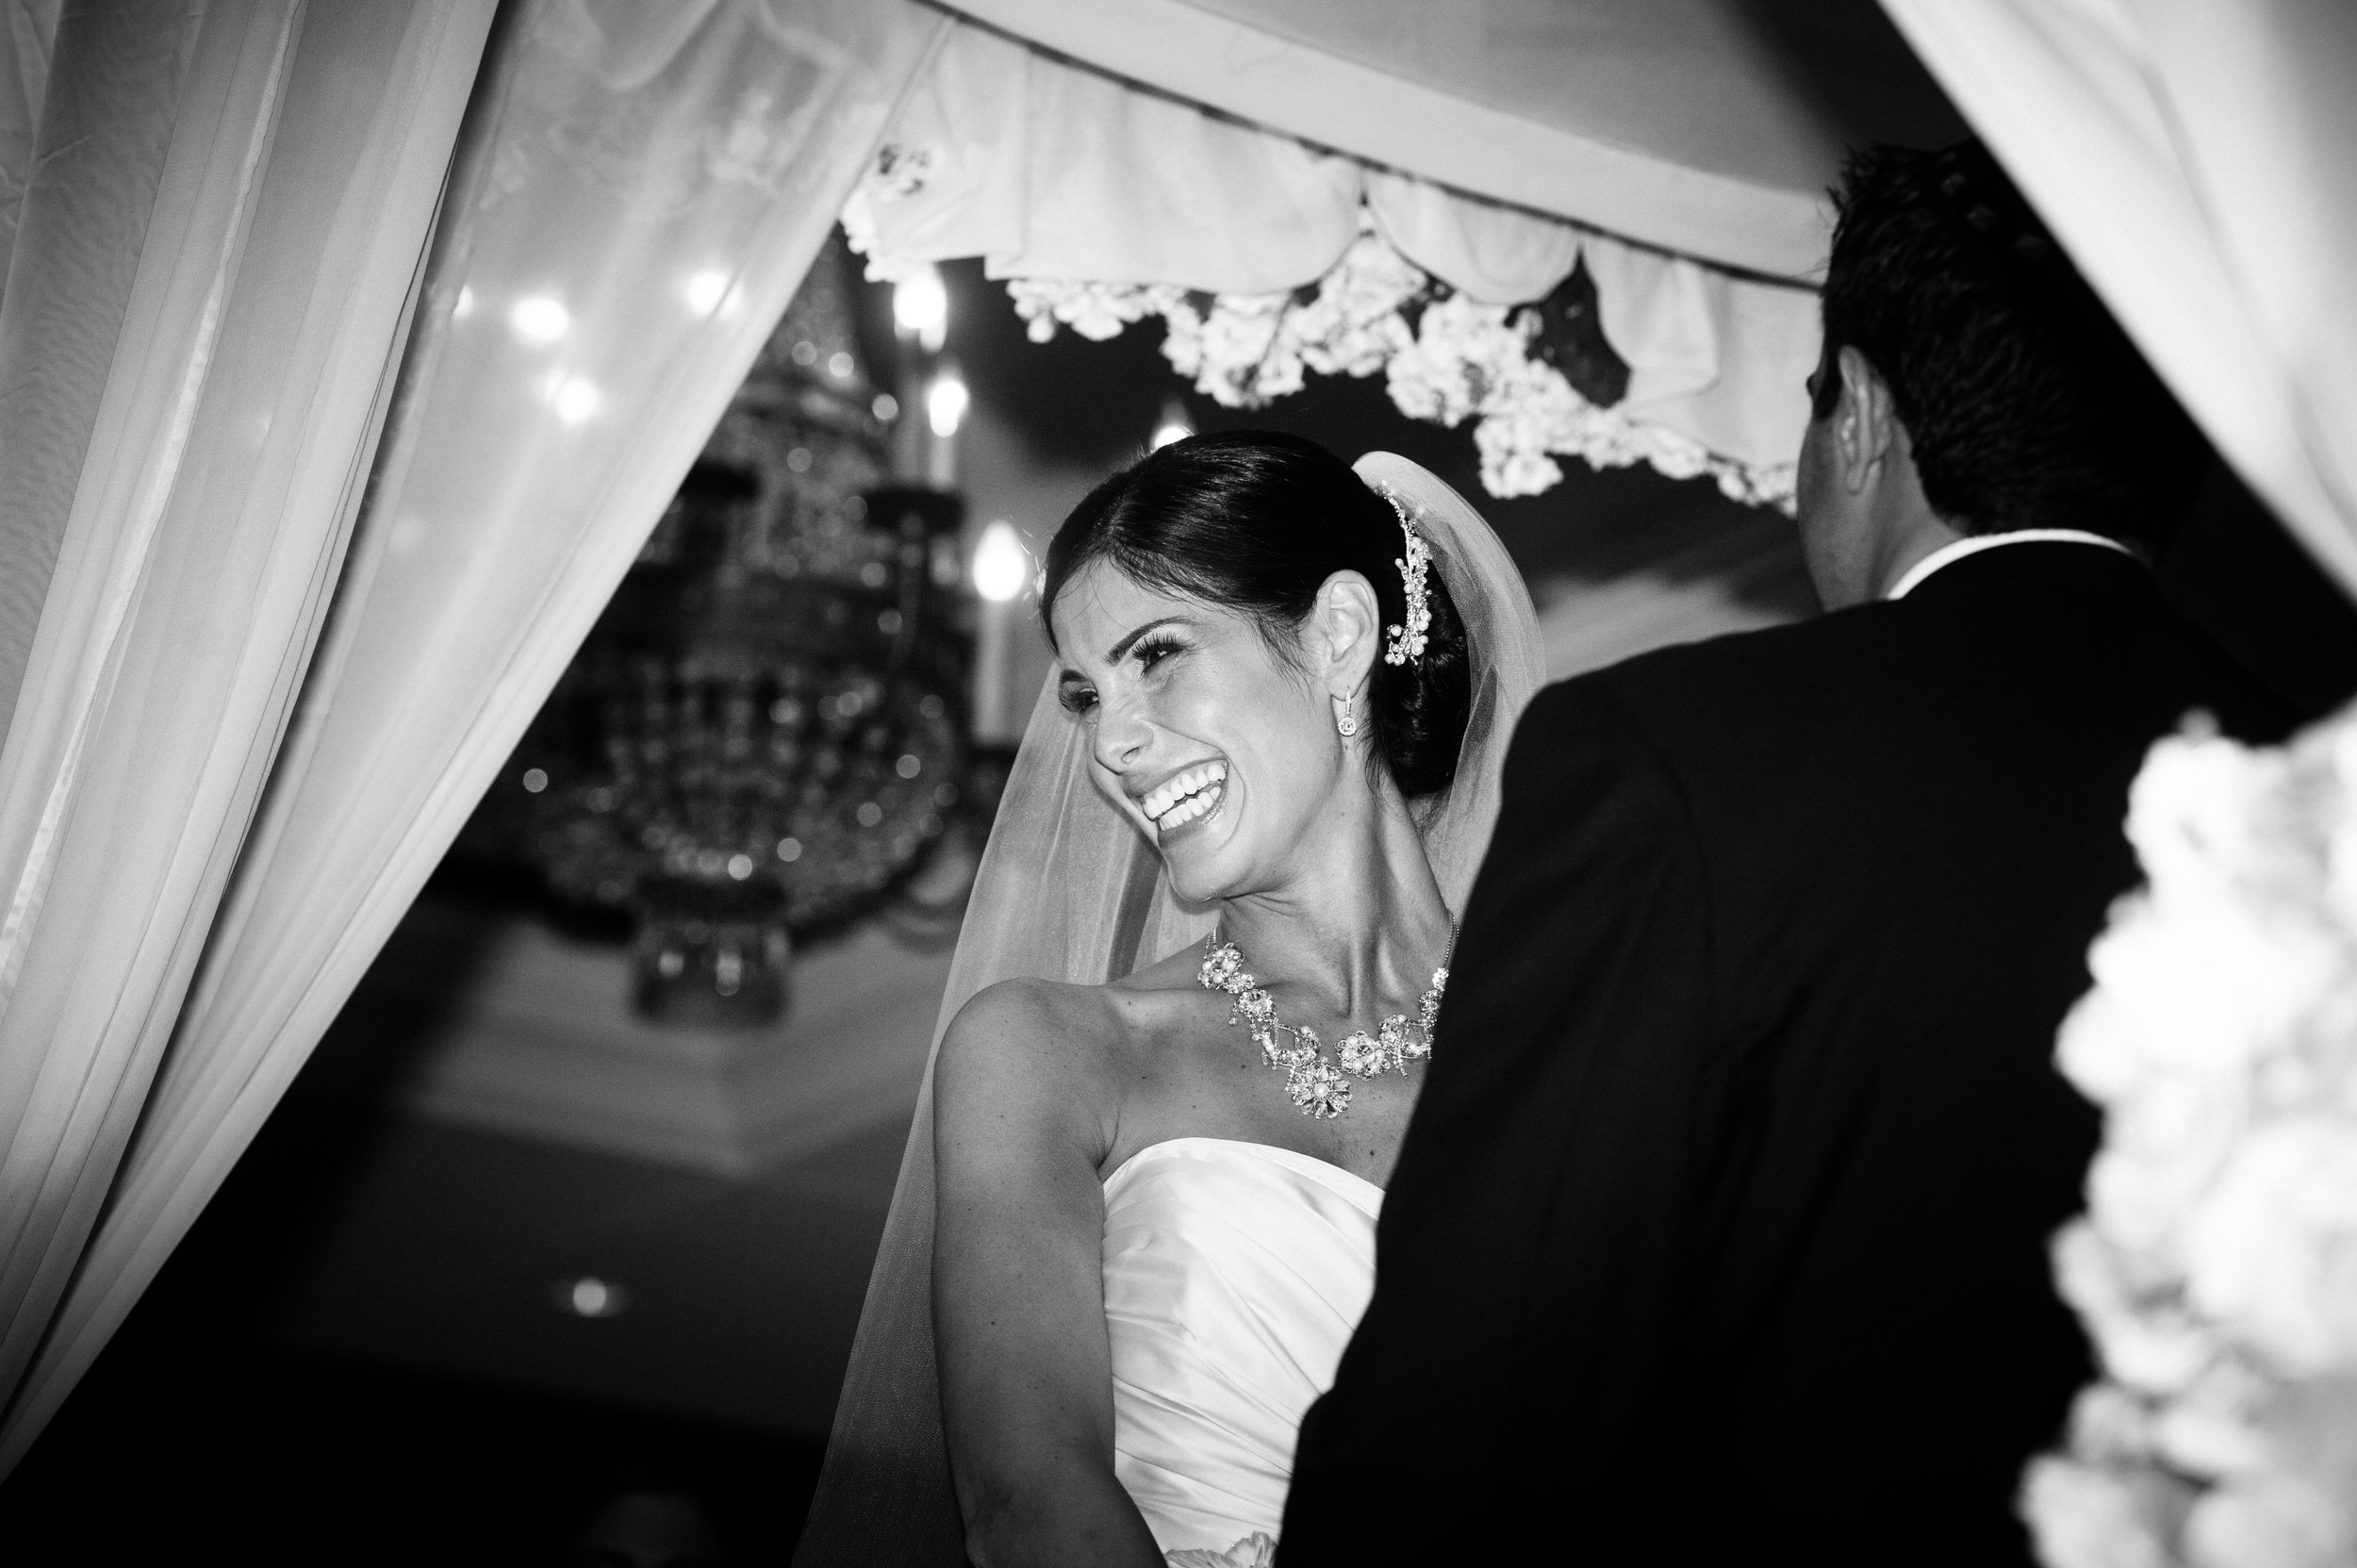 17 bride and groom at alter bride and groom exchanging vows Christine Johnson Photography Life Design Events.jpg